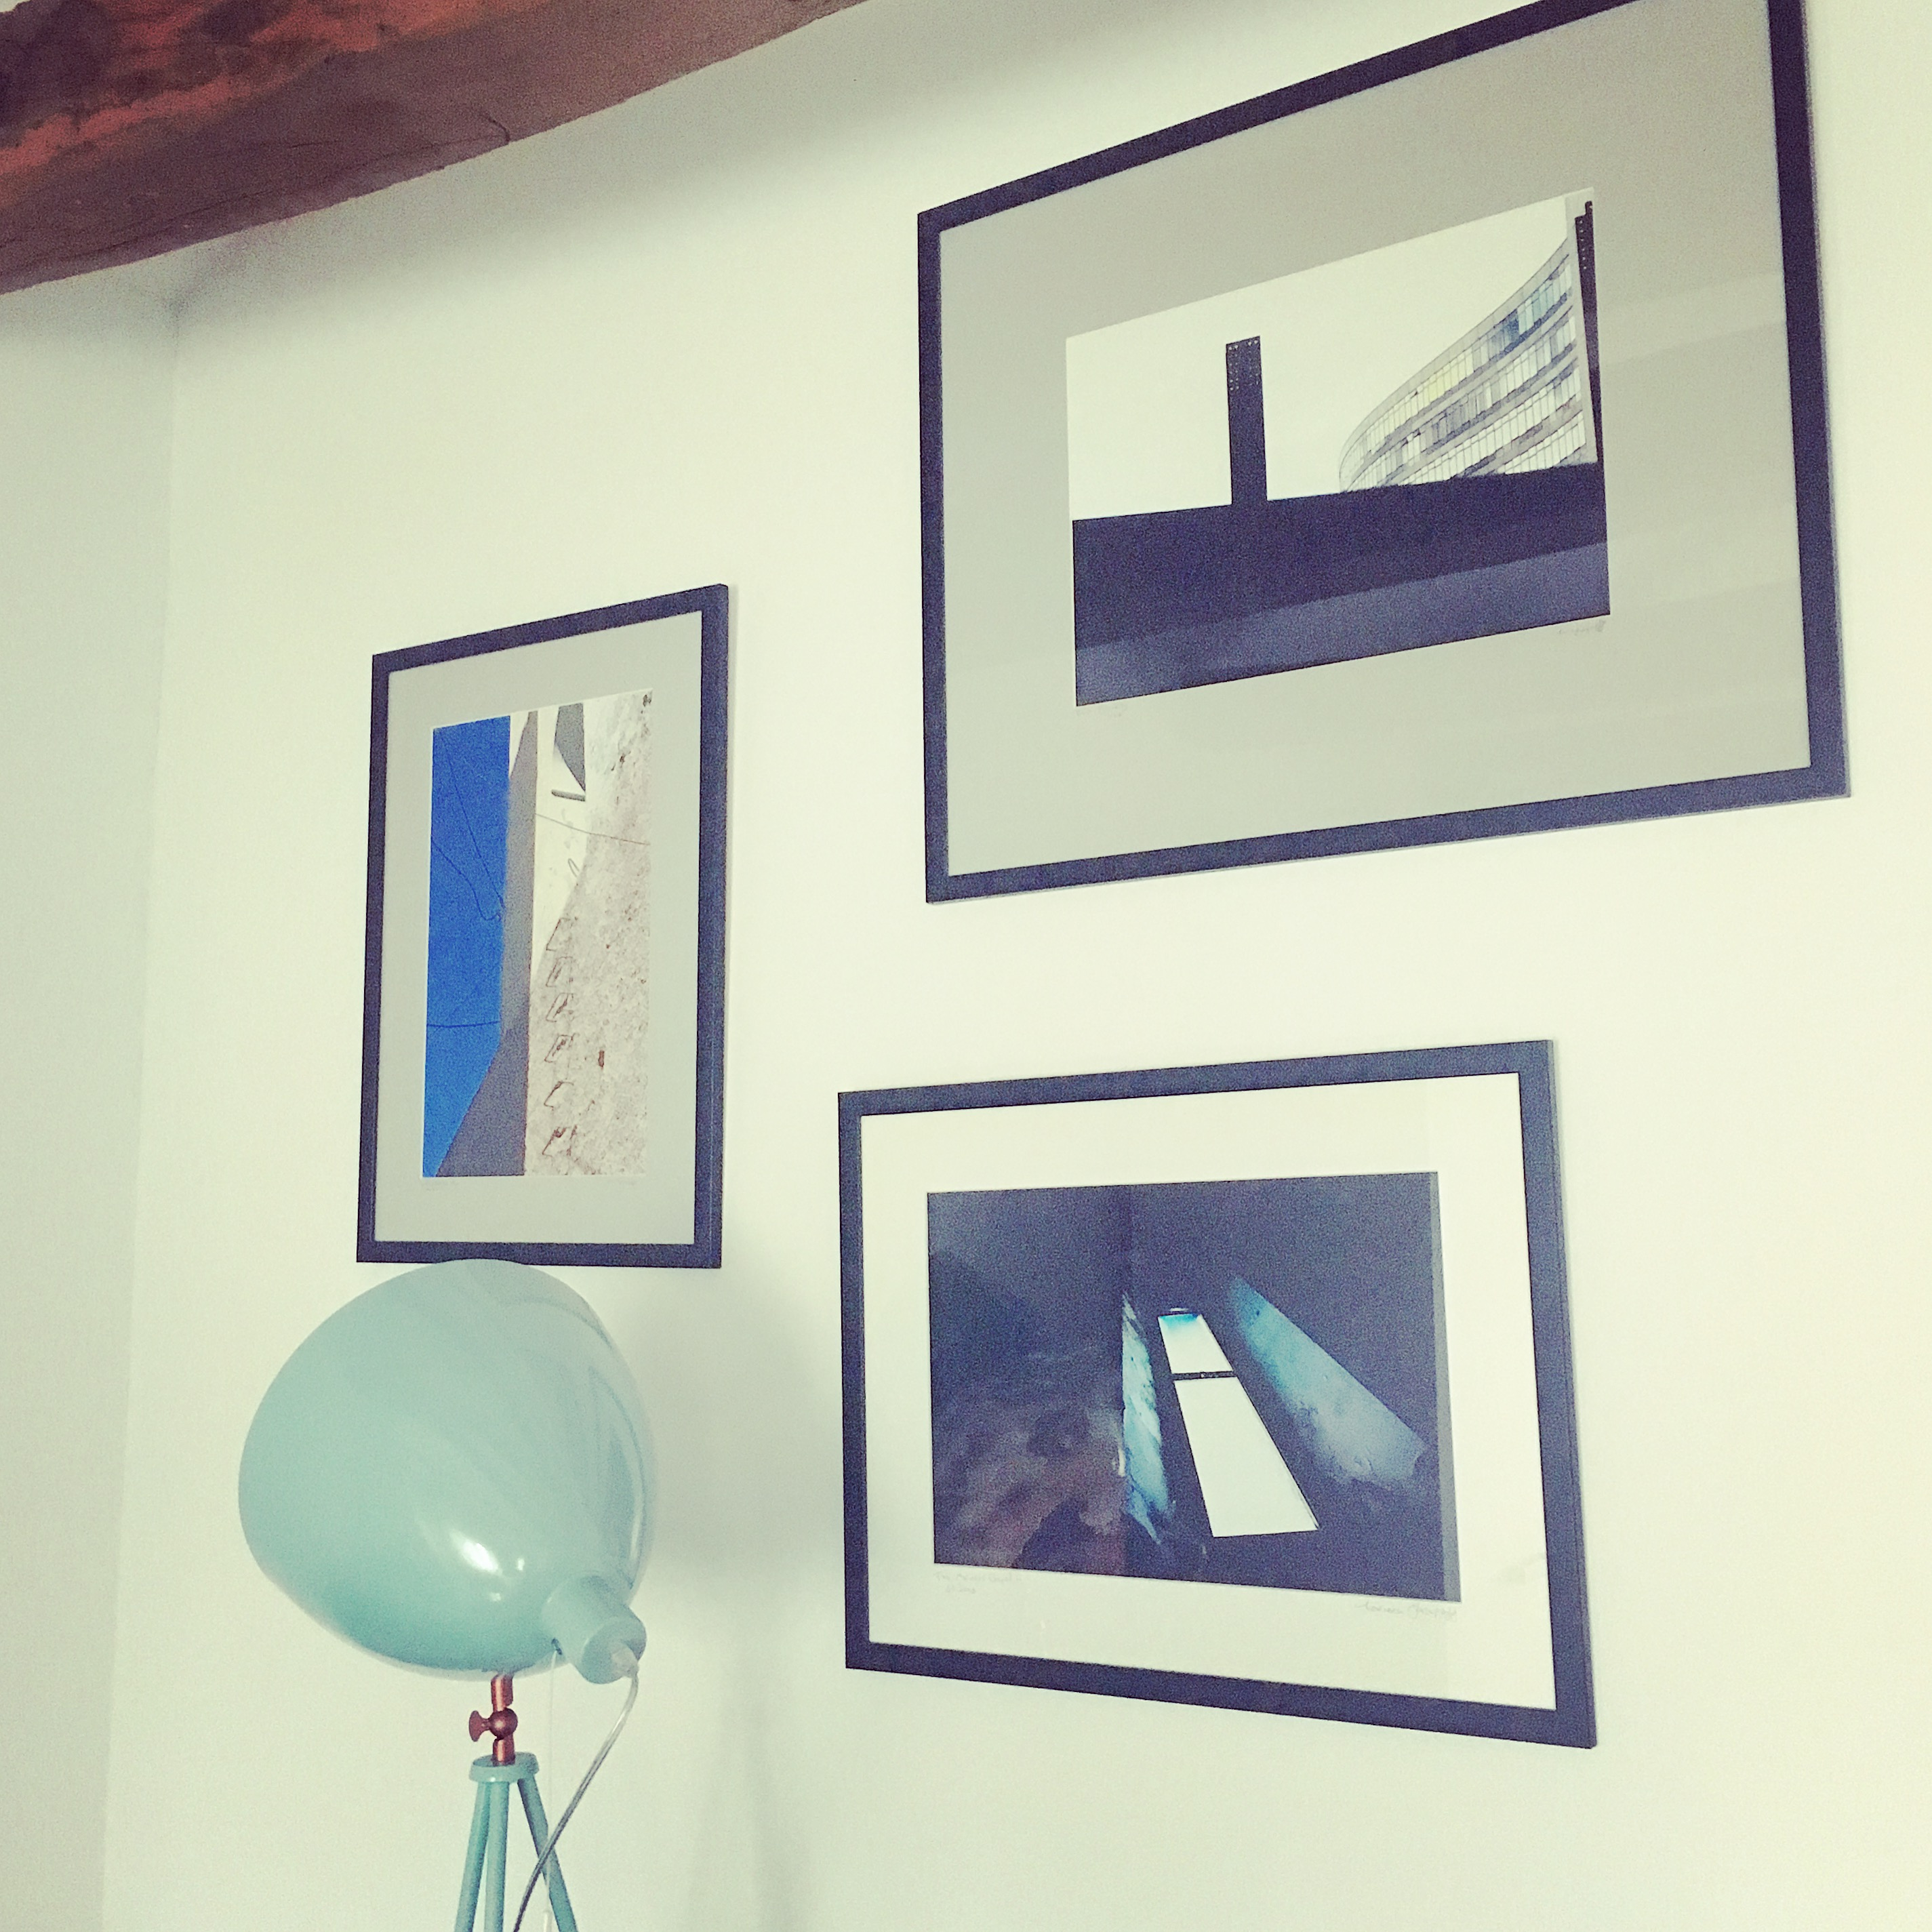 Lovely to have artwork back on the walls. Photography by Lawrence Yusupoff, Didsbury.